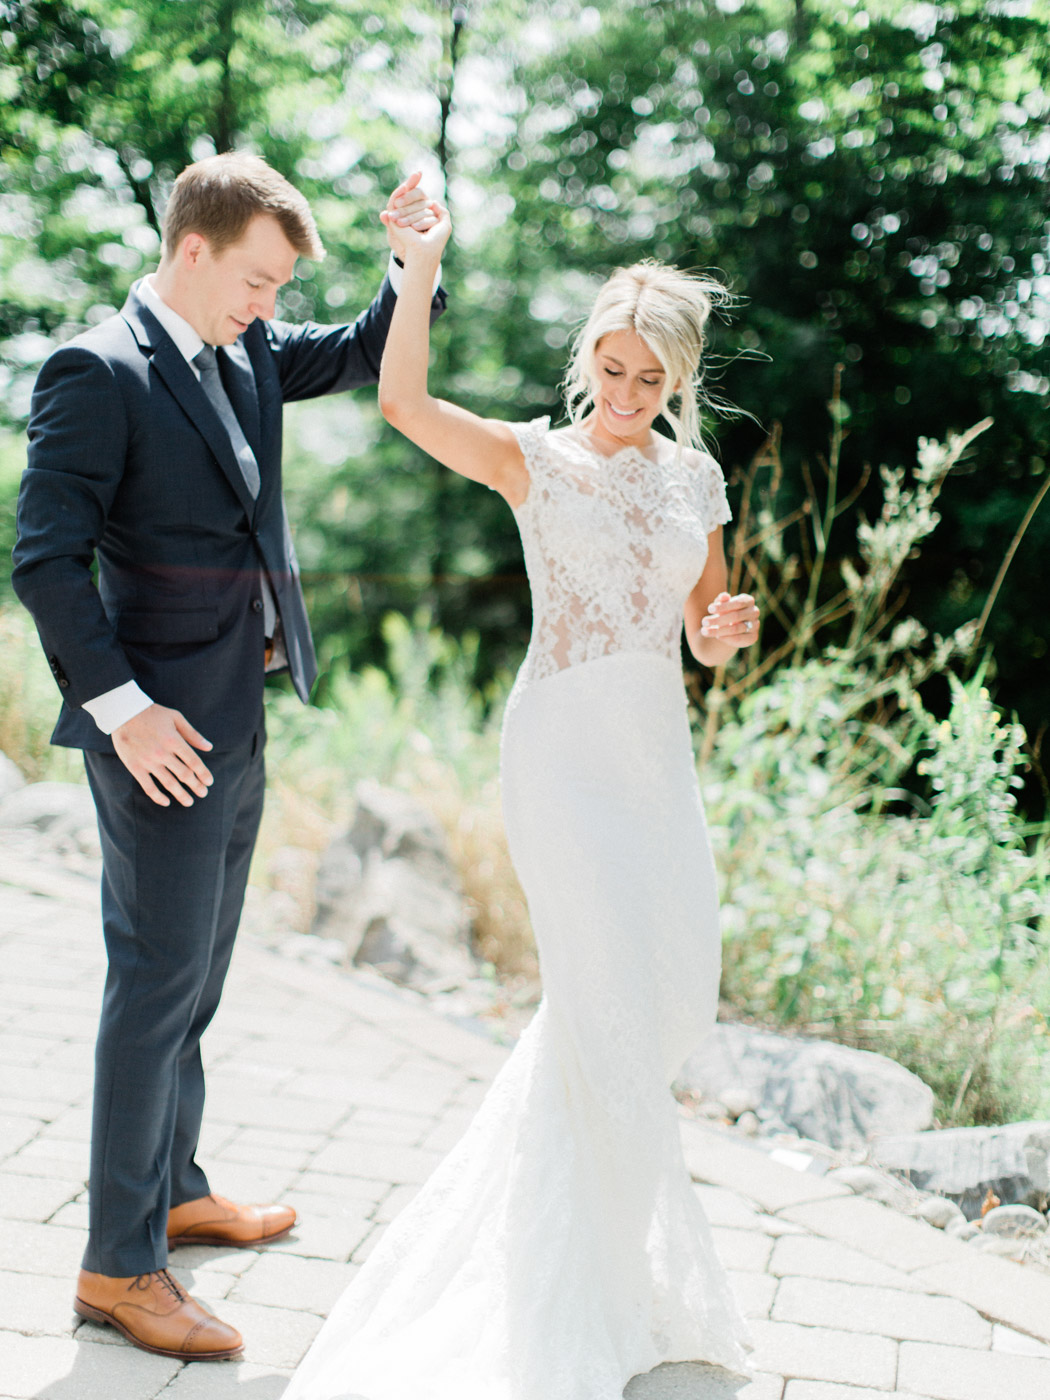 Romantic, happy, emotional first look at summer wedding in Muskoka at J.W. Marriott Rosseau.  Captured by Muskoka wedding photographer Corynn Fowler Photography.